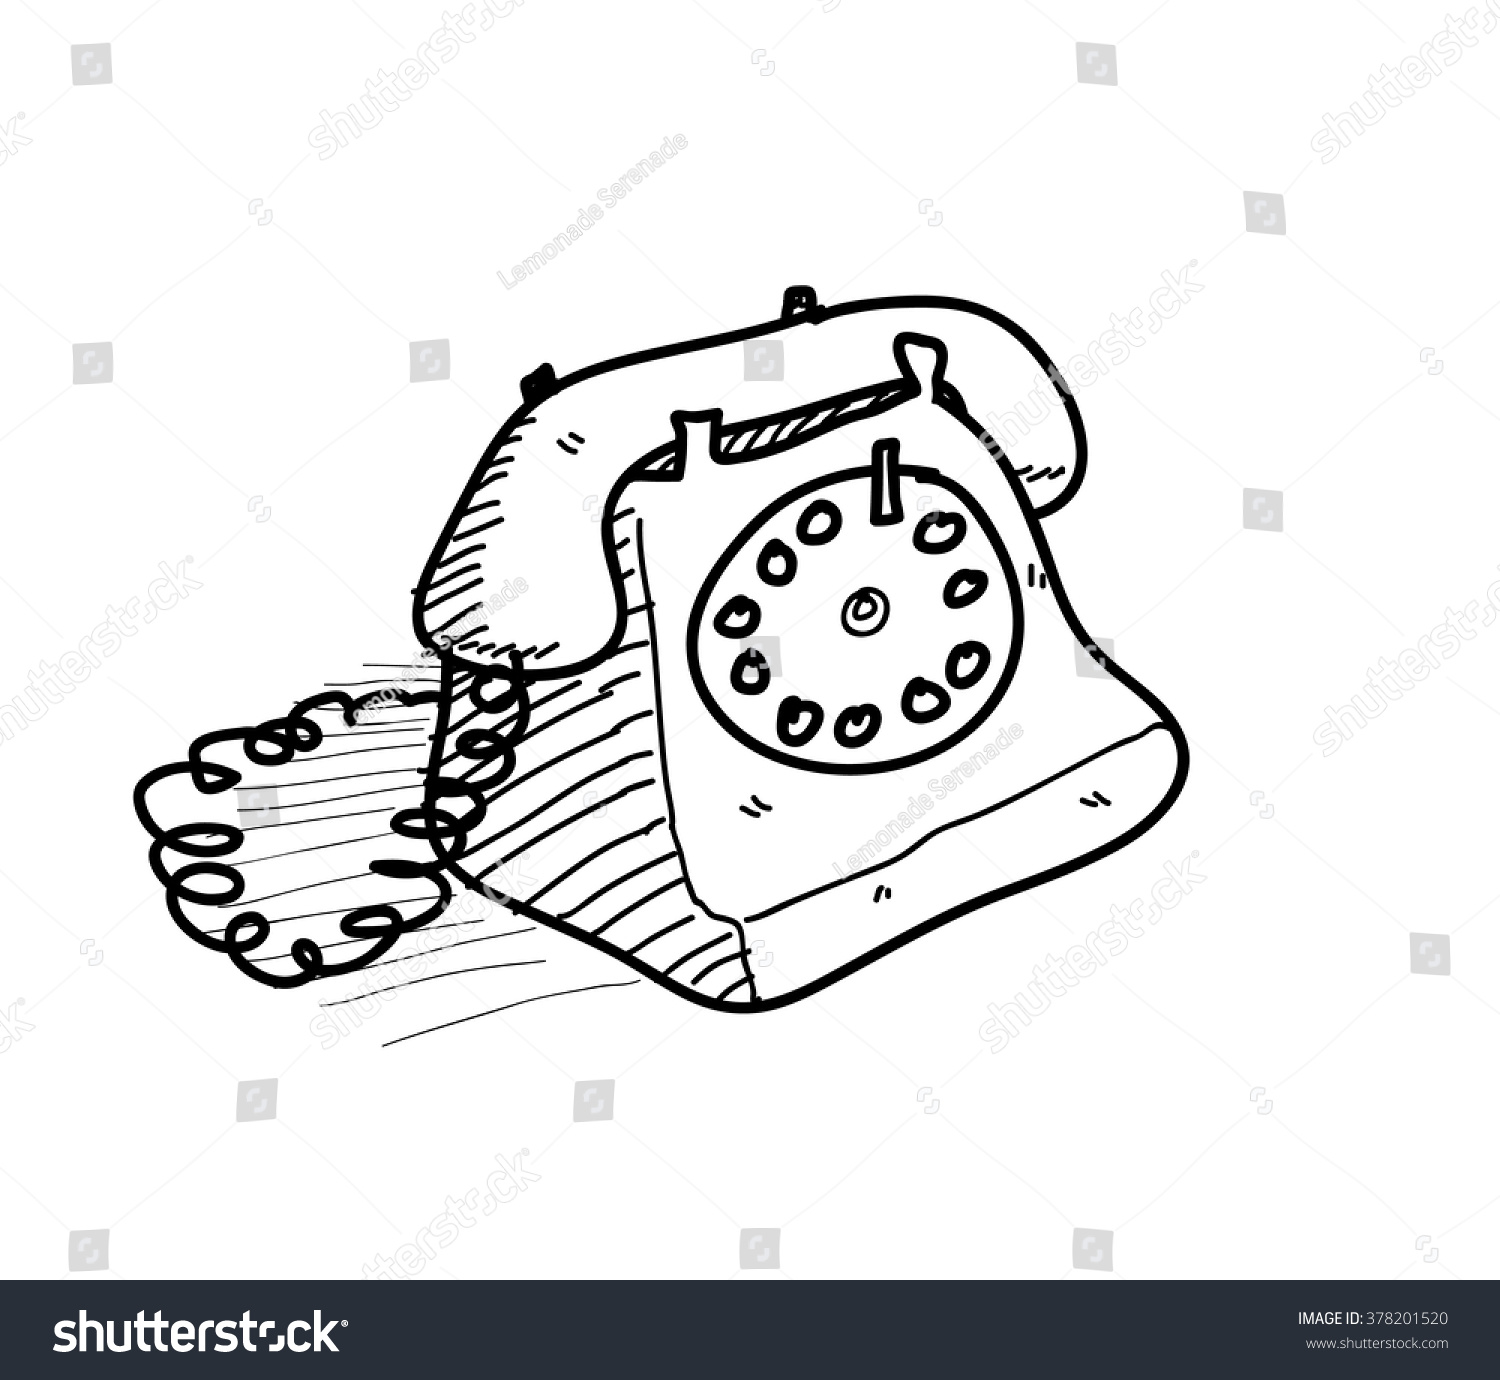 hight resolution of old telephone doodle a hand drawn vector doodle illustration of an old fashioned home telephone